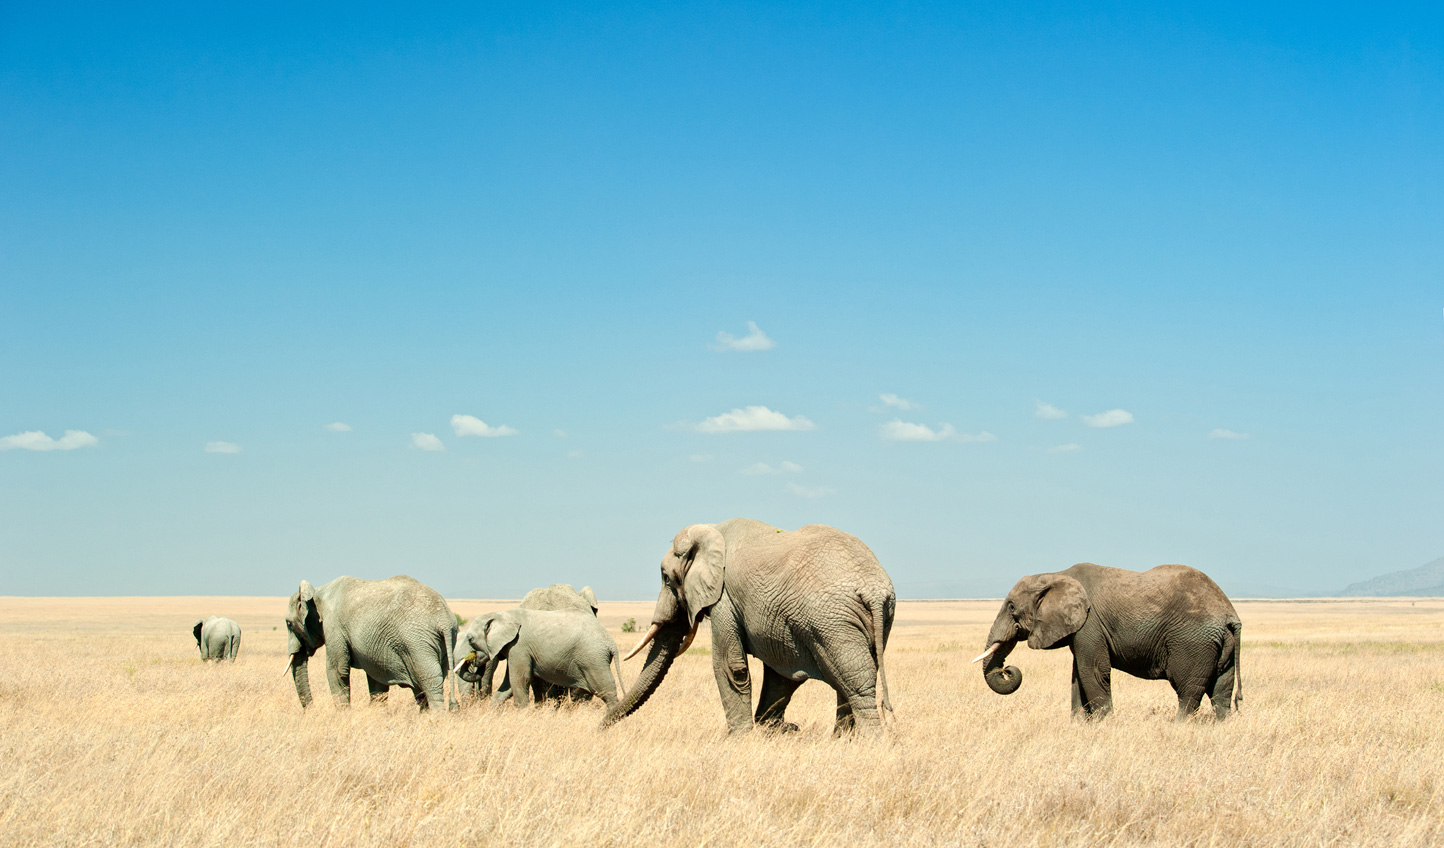 Journey across the plains of Tanzania with wildlife by your side